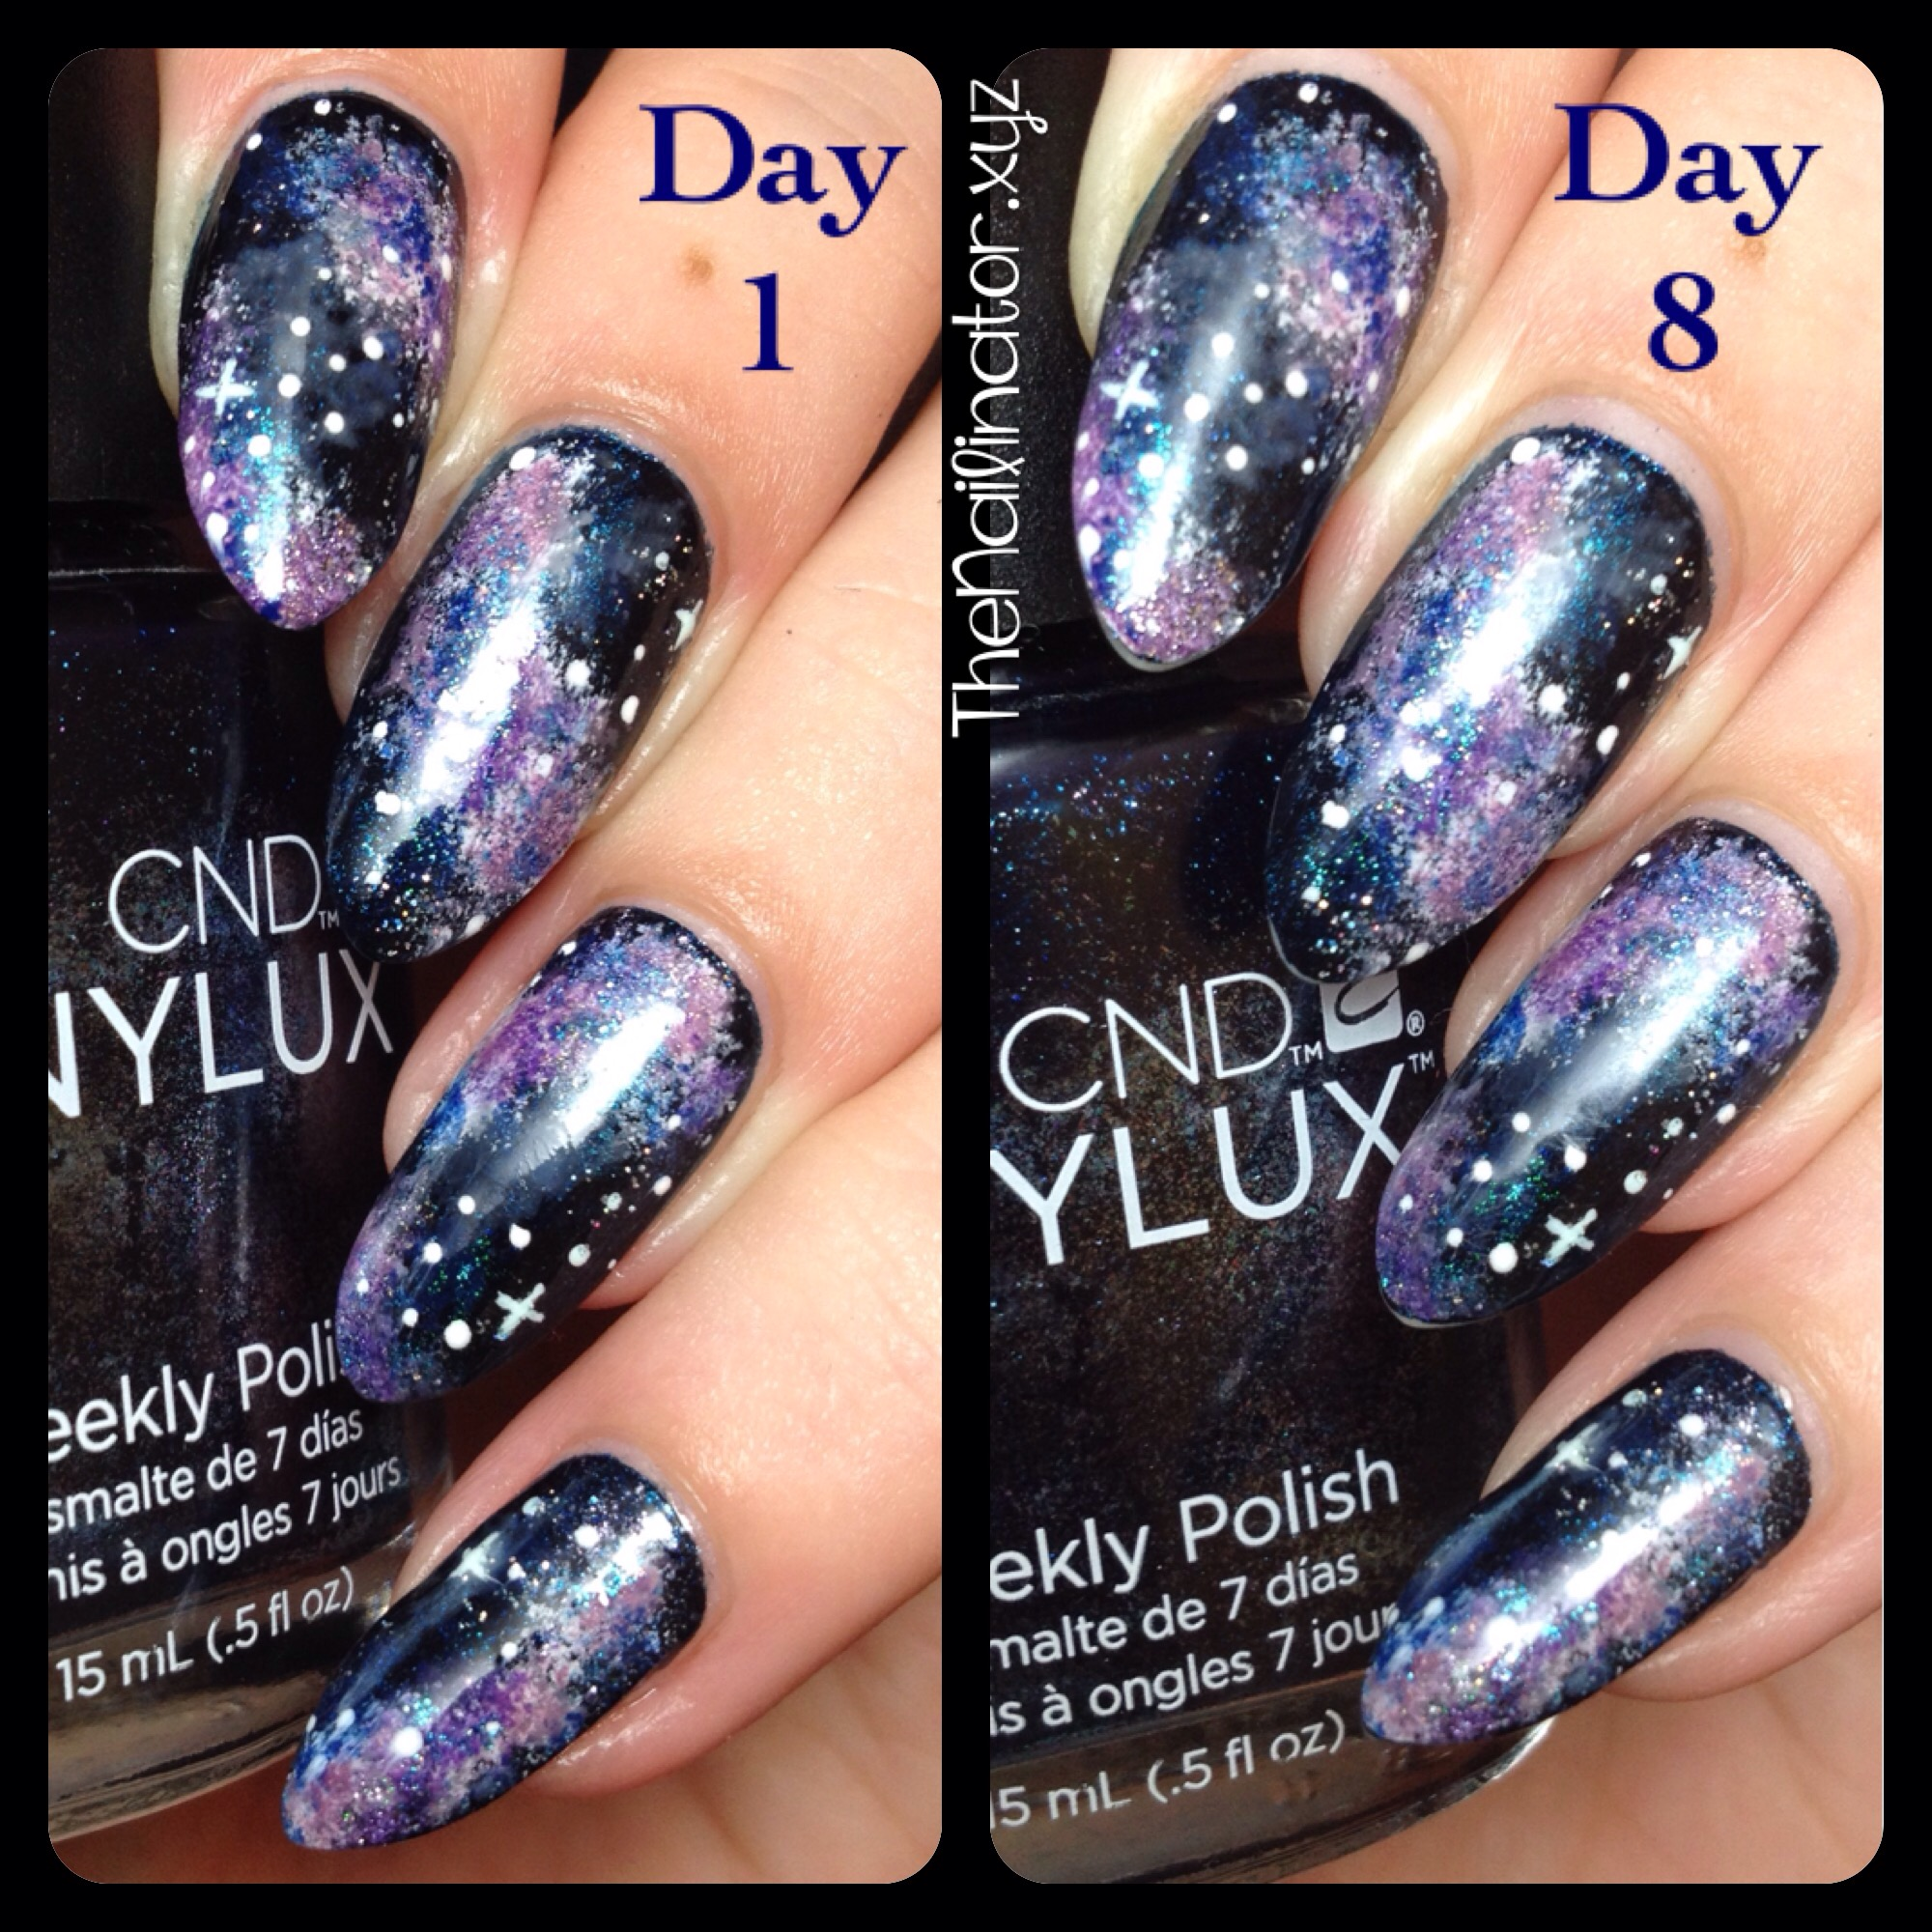 CND Vinylux Midnight Swim Nebula Nail Art | The Nailinator